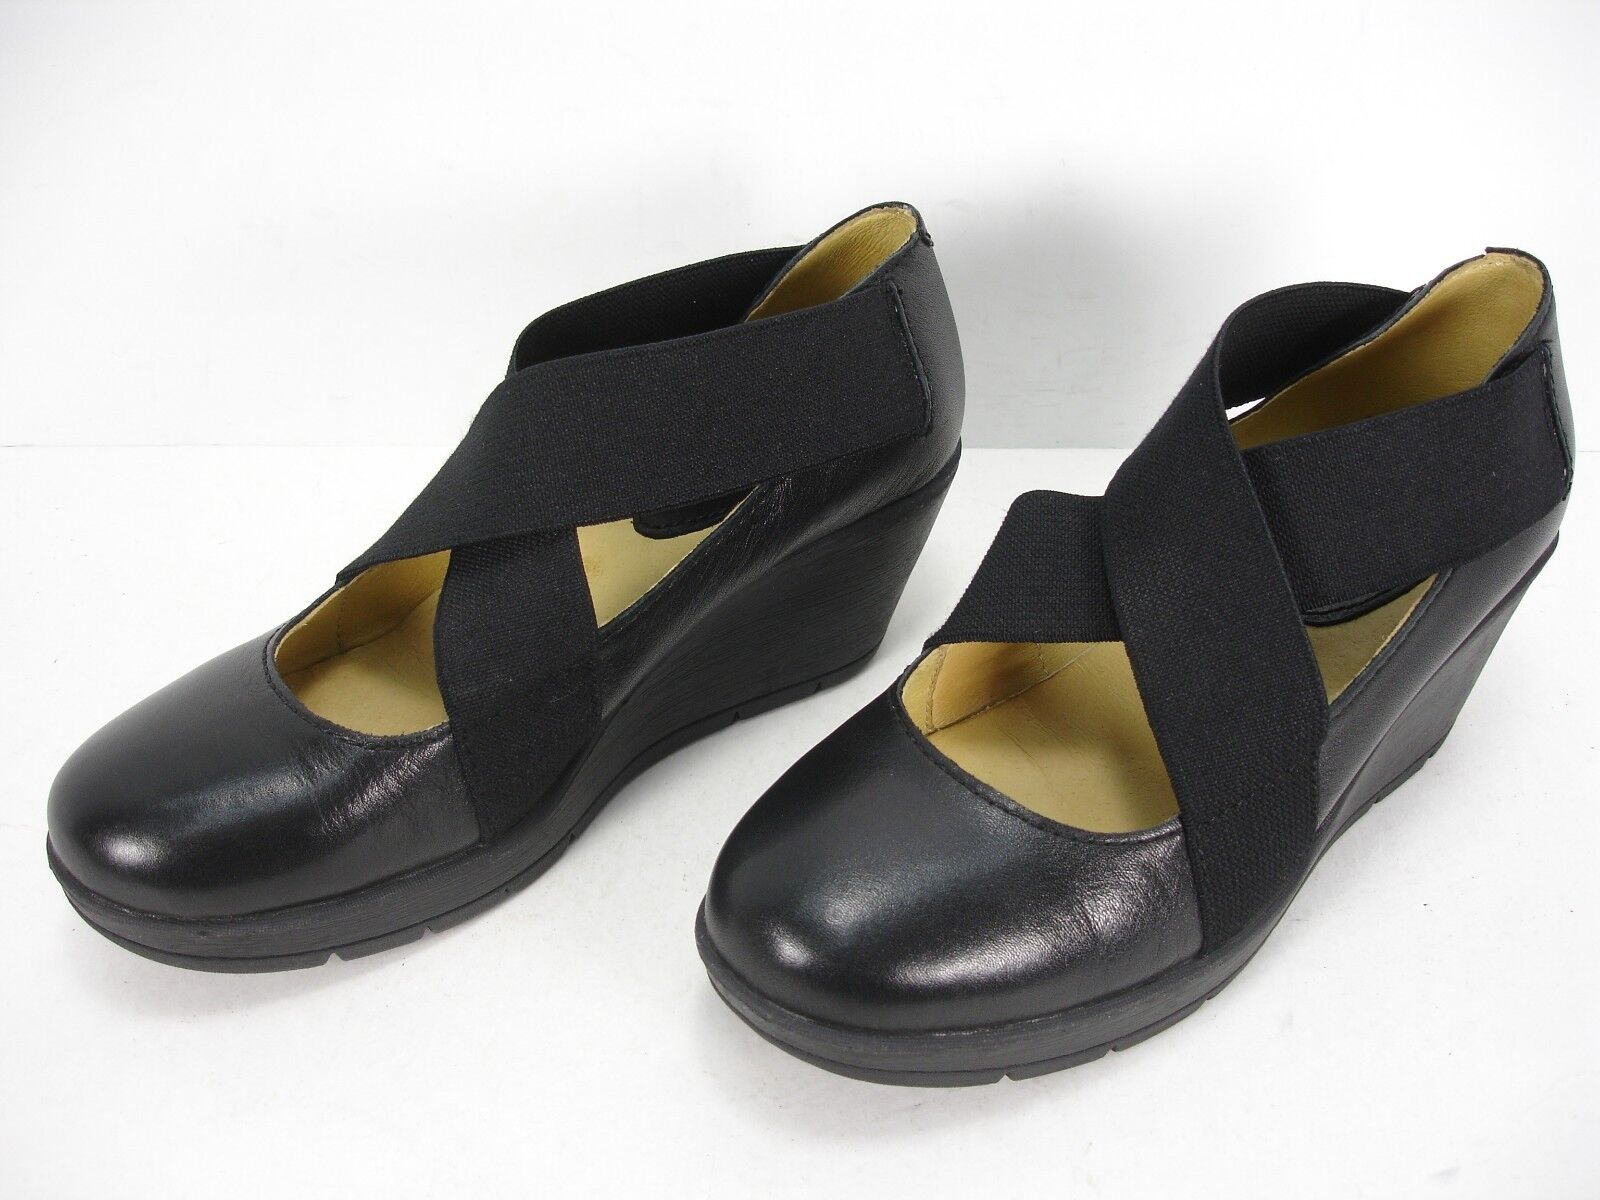 BUSSOLA ZUMAIA BLACK LEATHER WEDGES CRISS CROSS MARY JANE  SHOES WOMEN'S 37 MINT